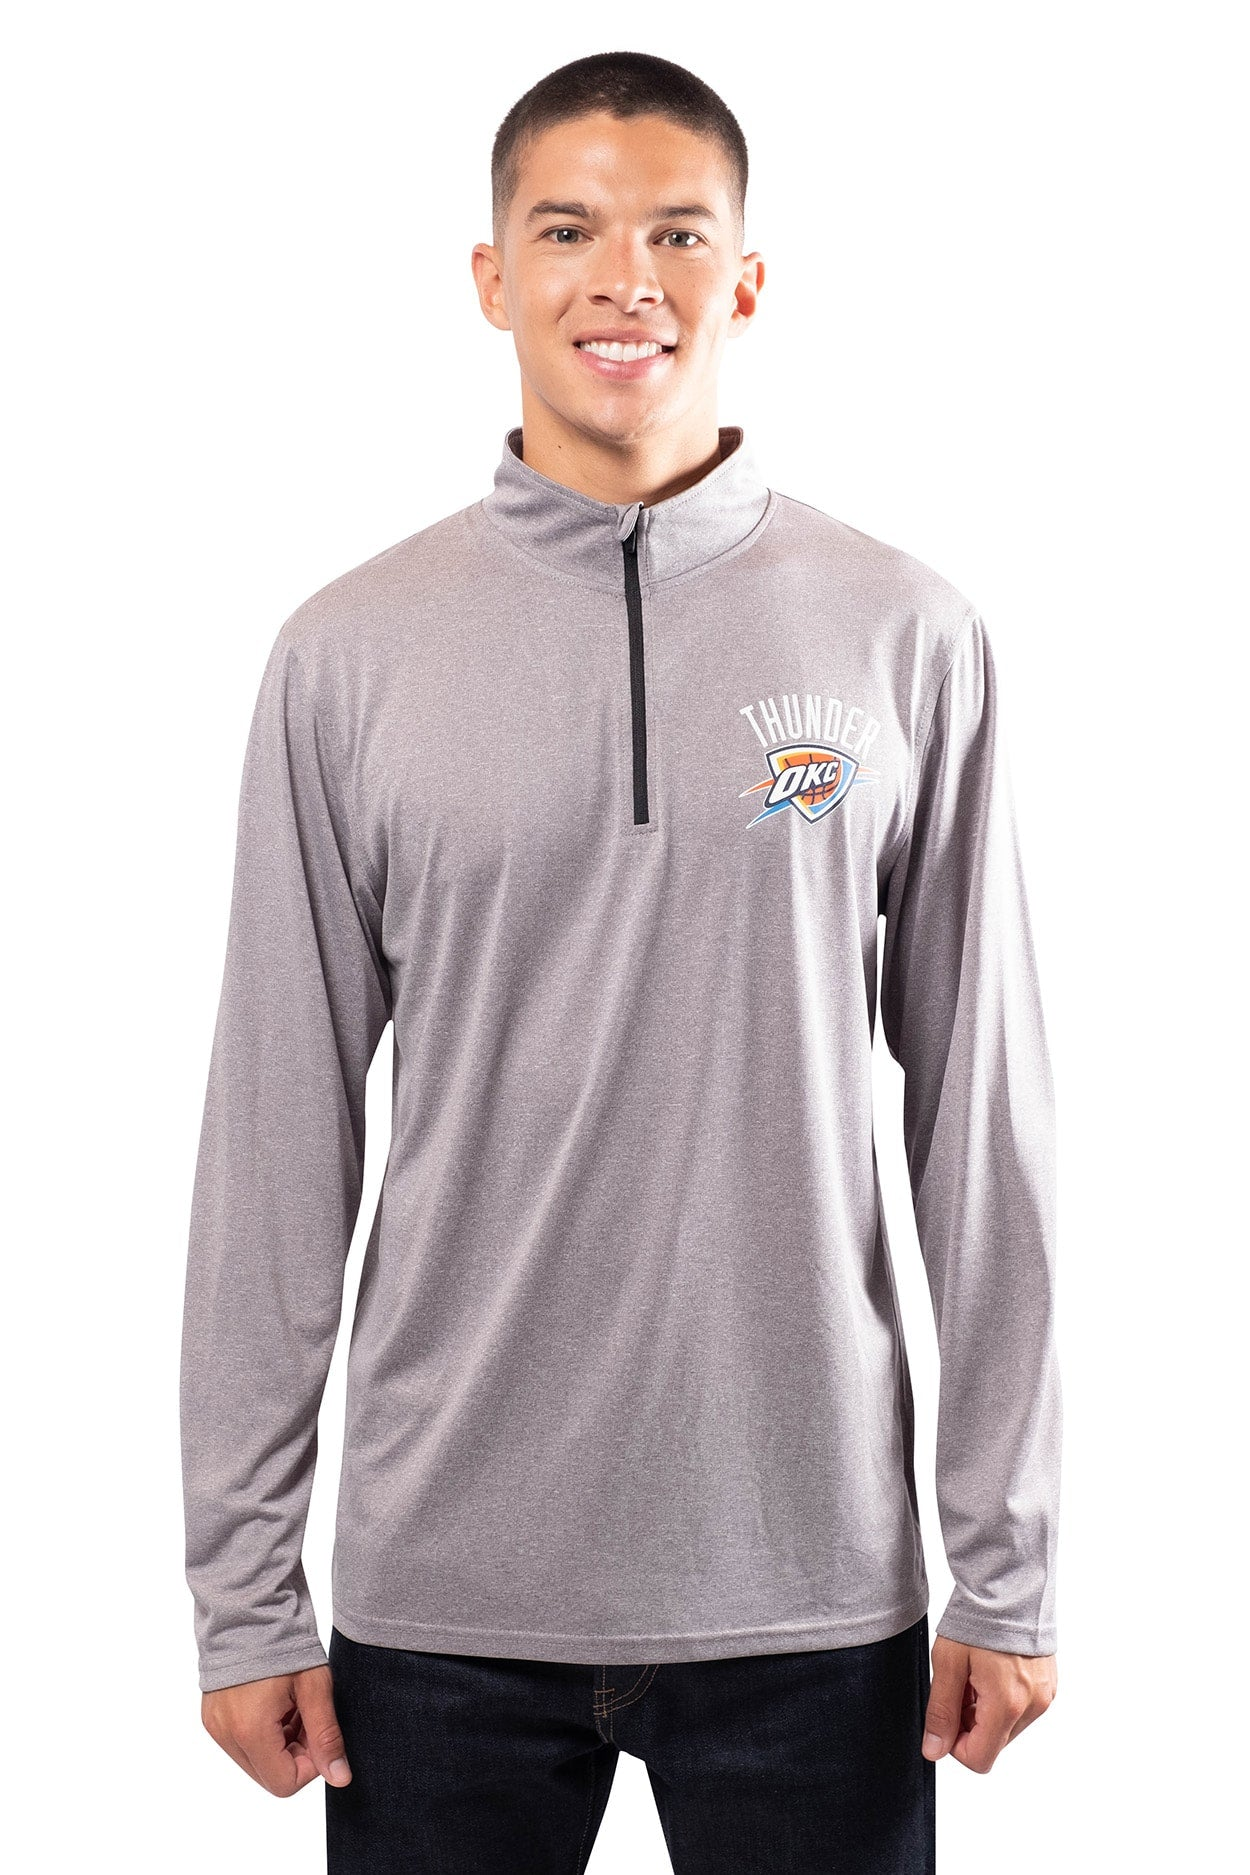 NBA Oklahoma City Thunder Men's Quarter Zip Quick Dry Tee|Oklahoma City Thunder